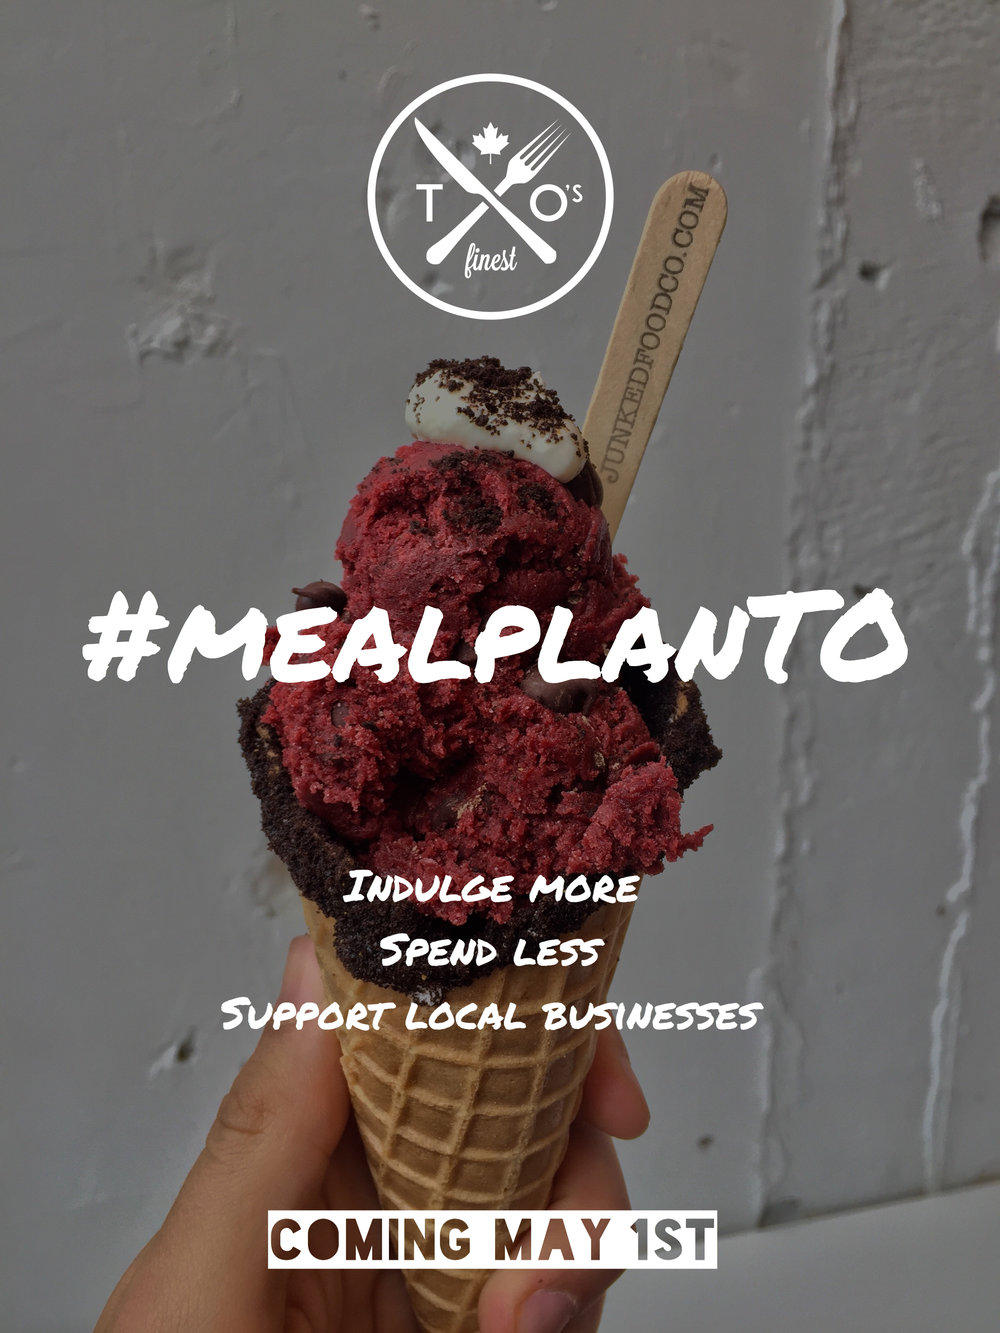 meal_plan_tos_finest